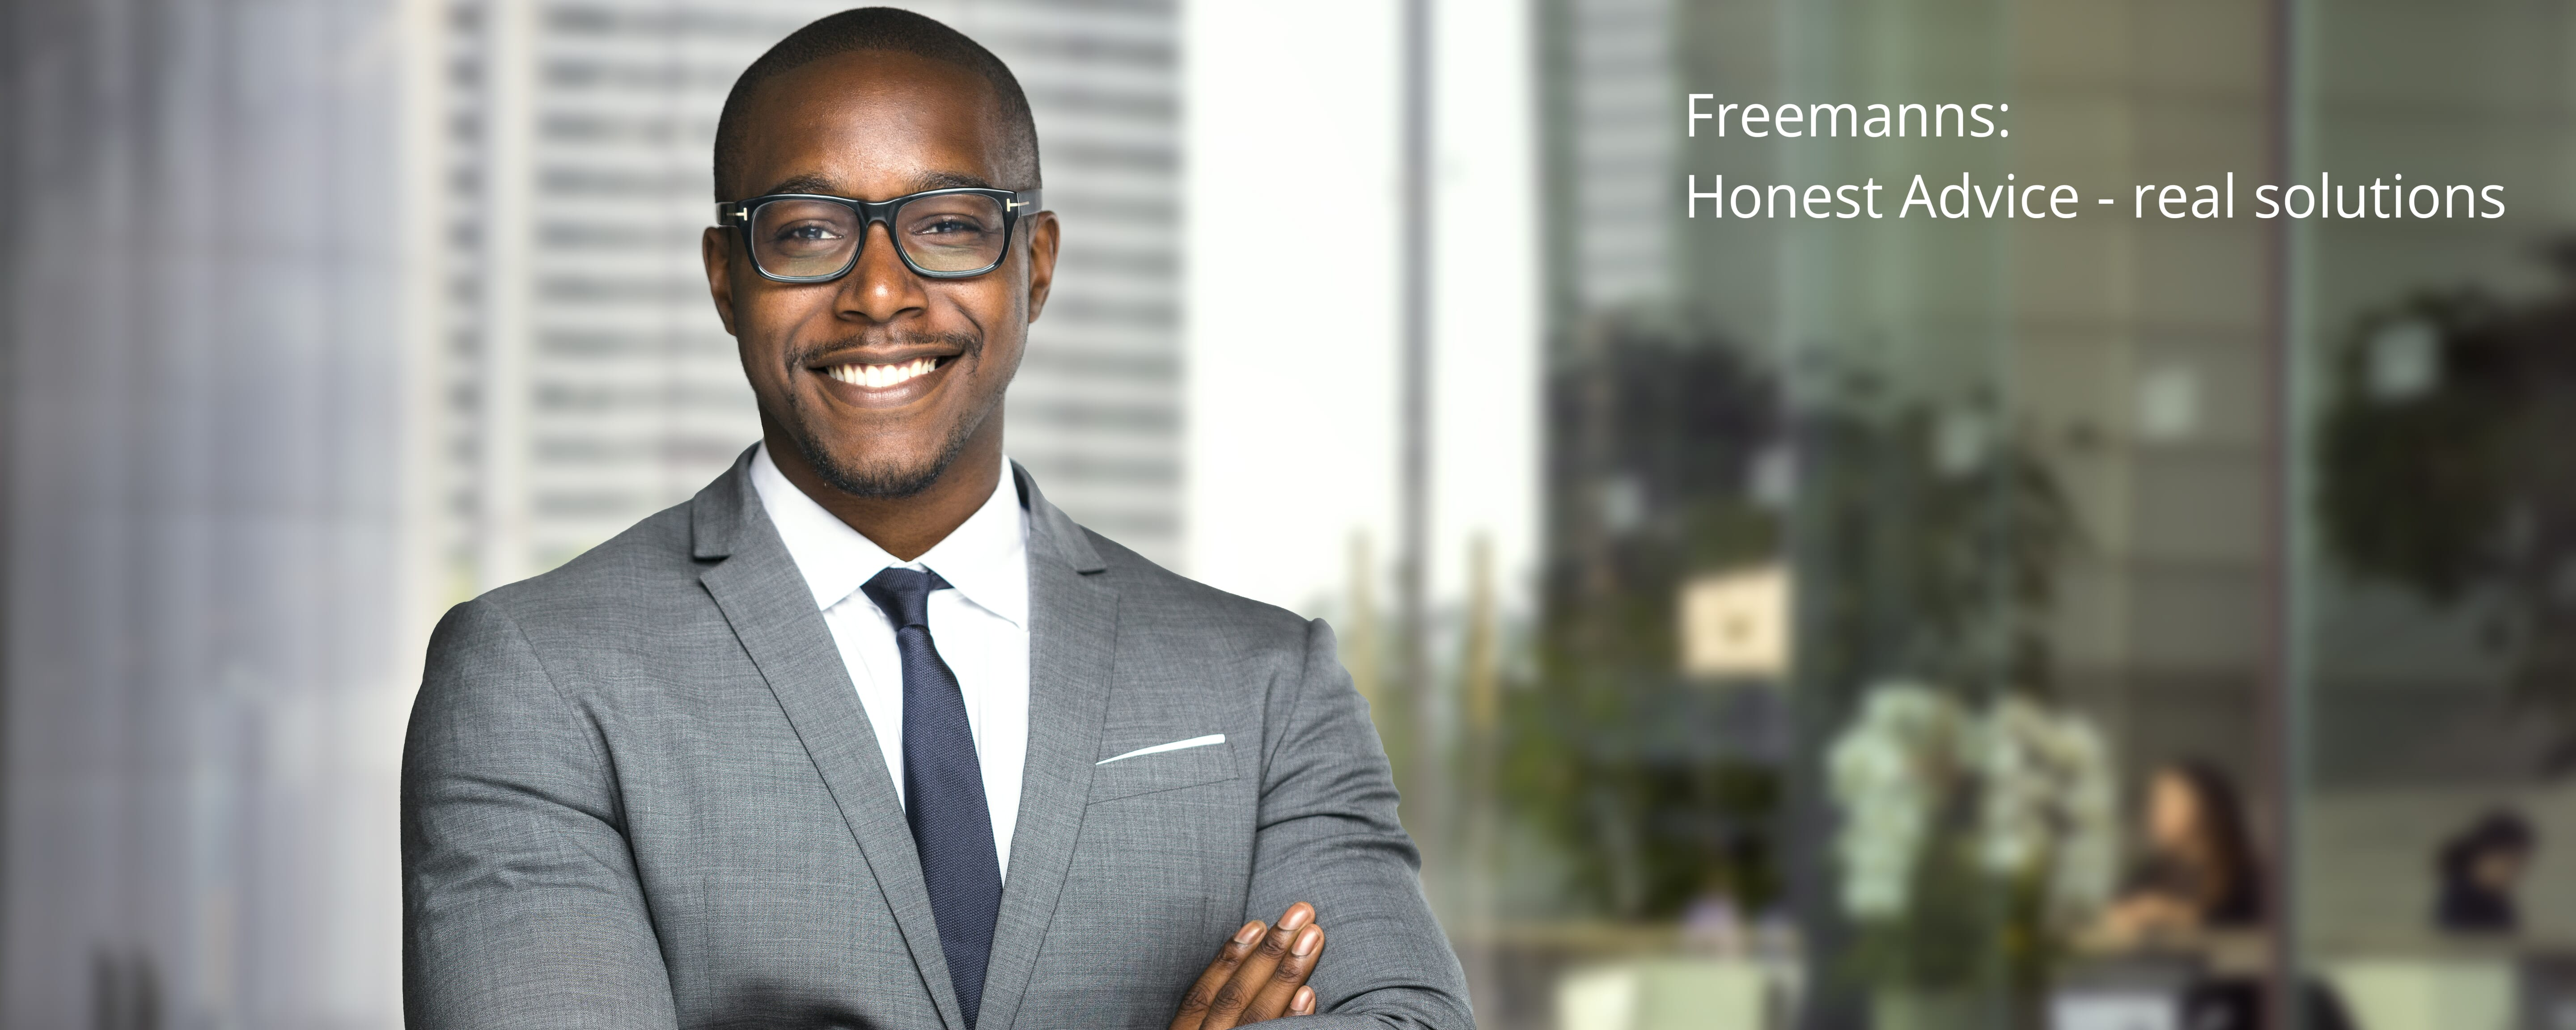 Friendly Solicitor welcomes his clients